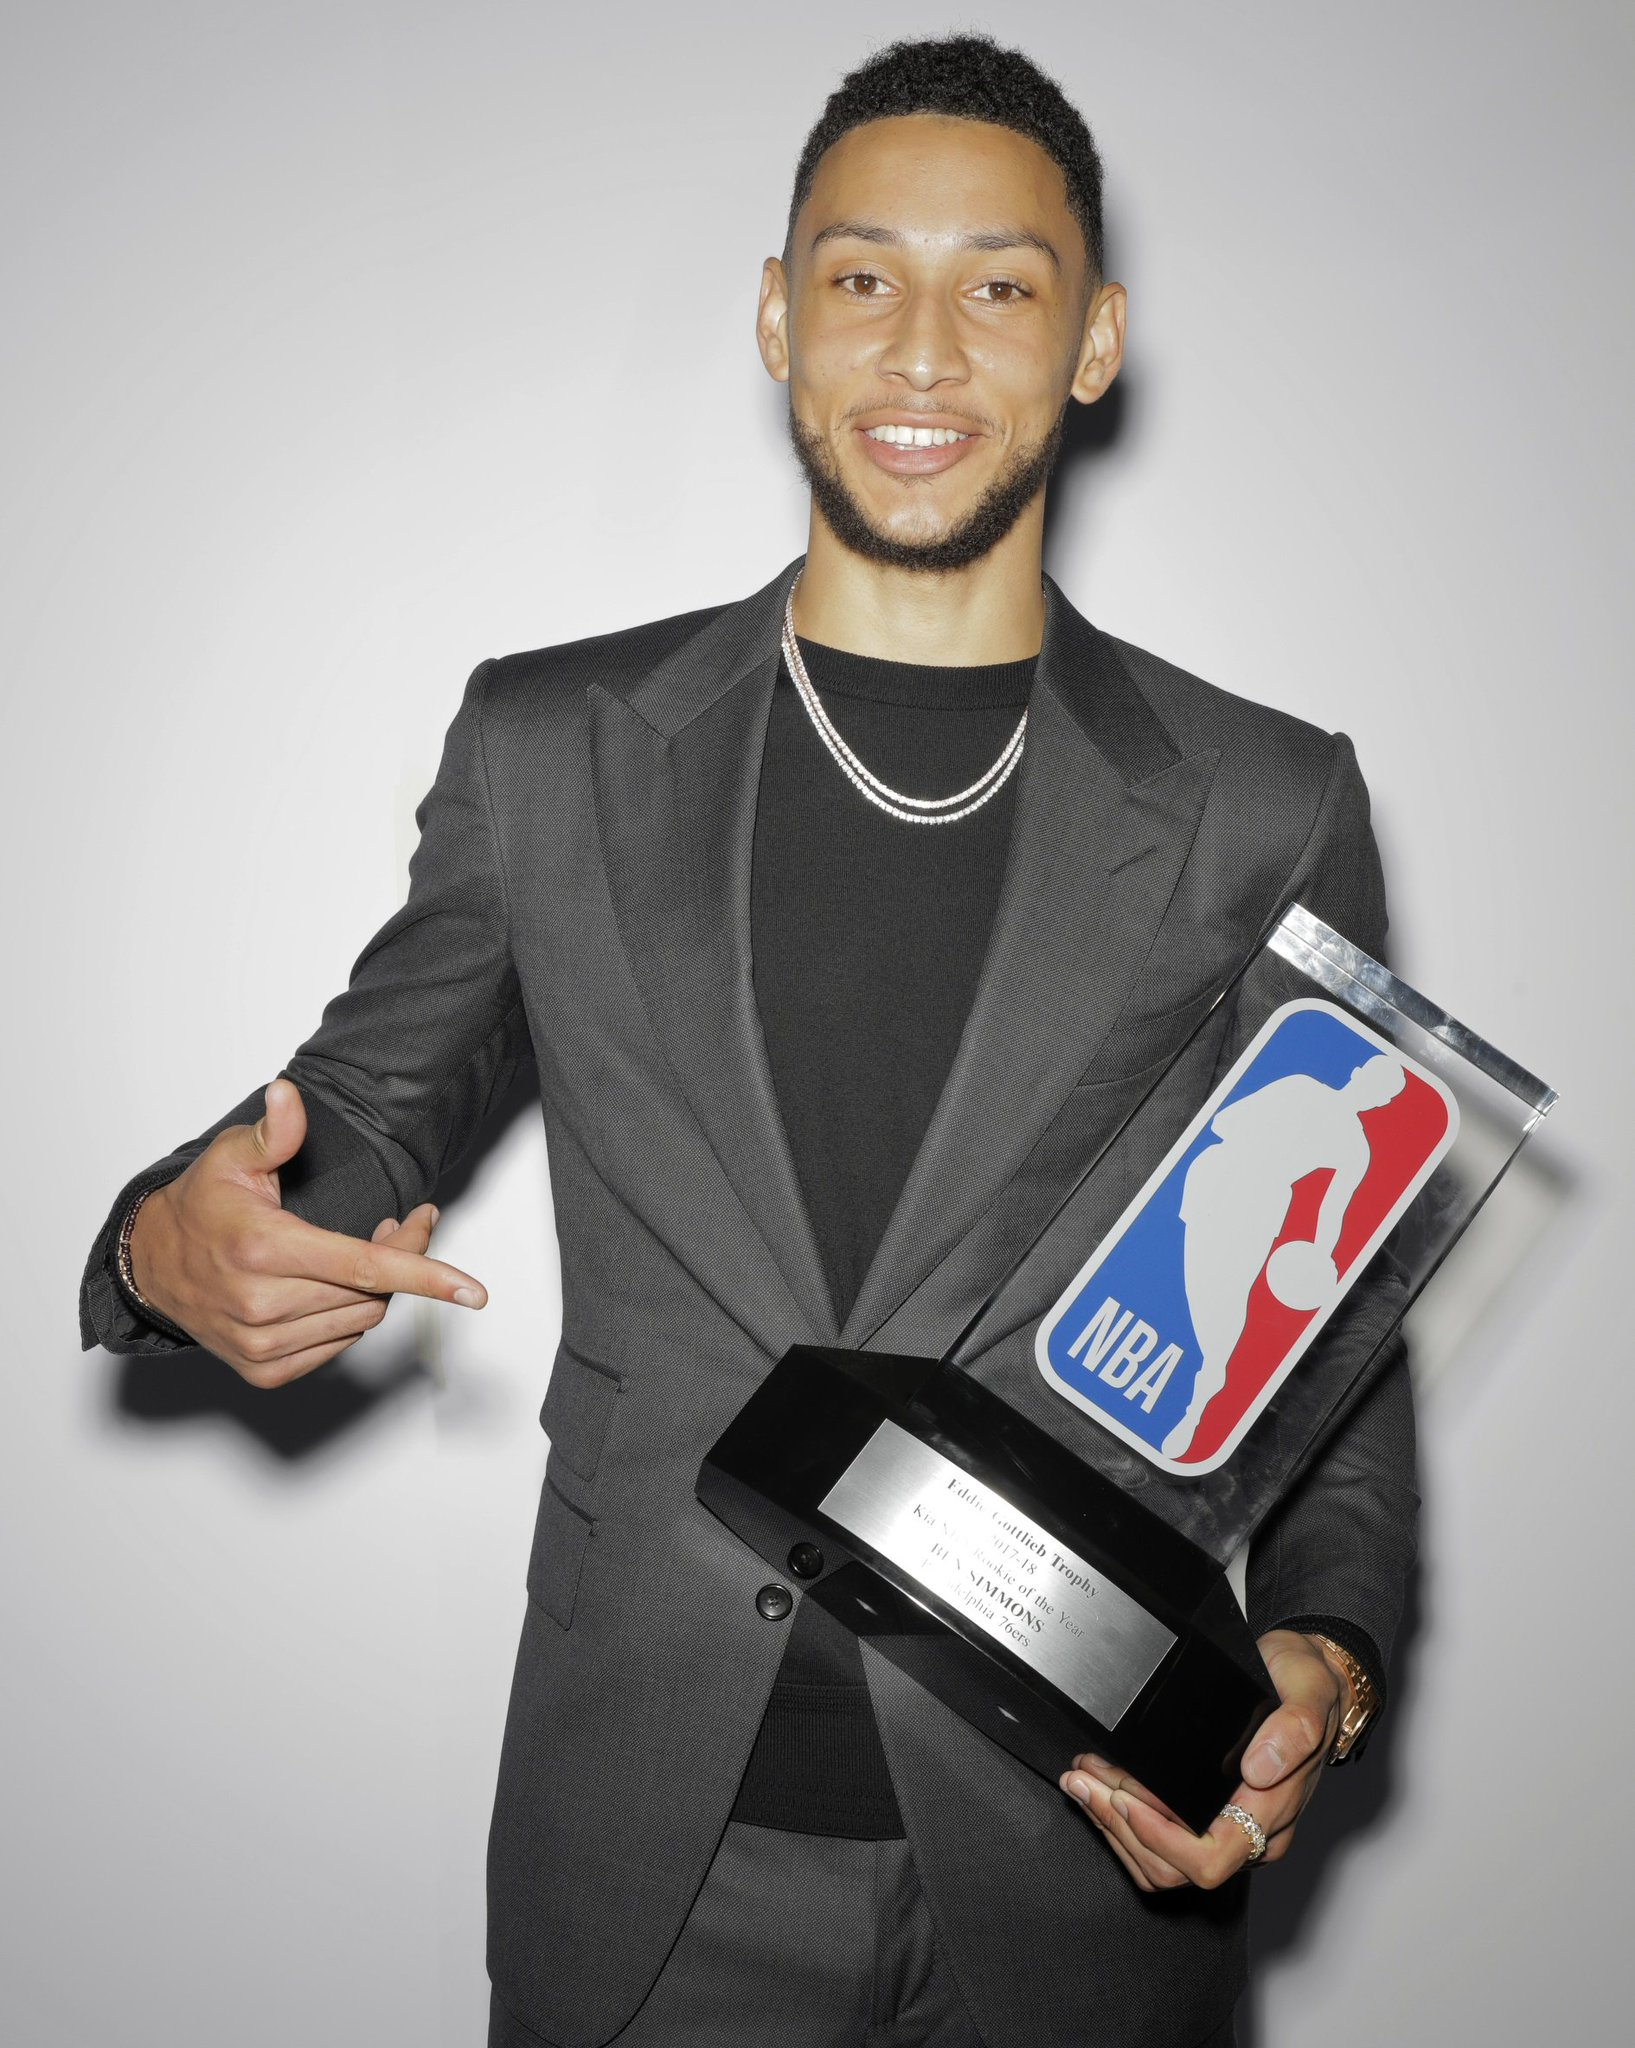 Join us in wishing @BenSimmons25 of the @sixers a HAPPY 22nd BIRTHDAY! #NBABDAY https://t.co/mpN0dVk4NG